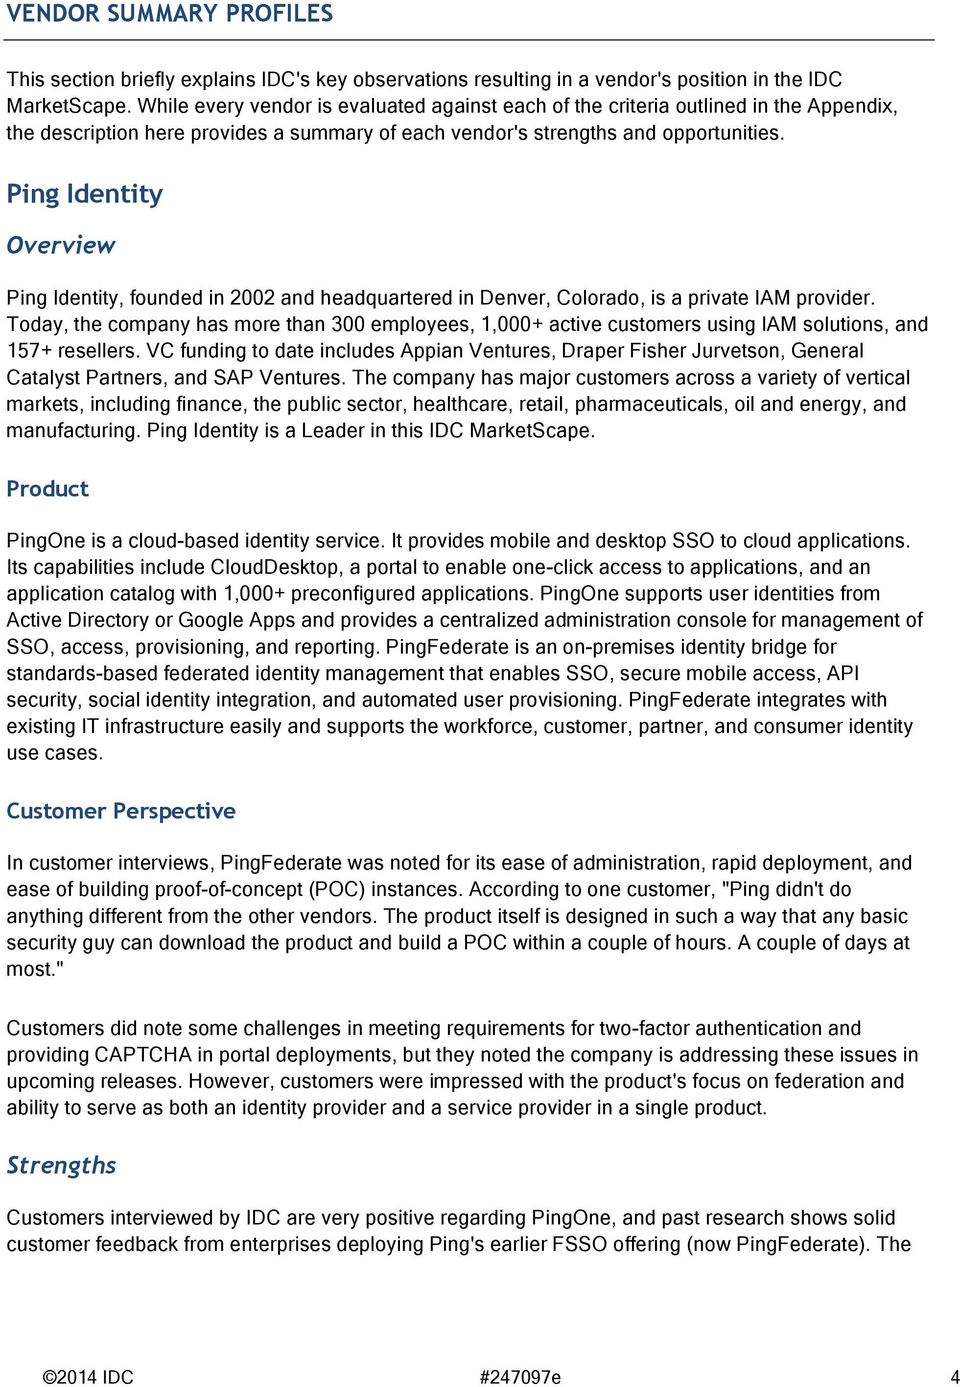 Ping Identity Overview Ping Identity, founded in 2002 and headquartered in Denver, Colorado, is a private IAM provider.